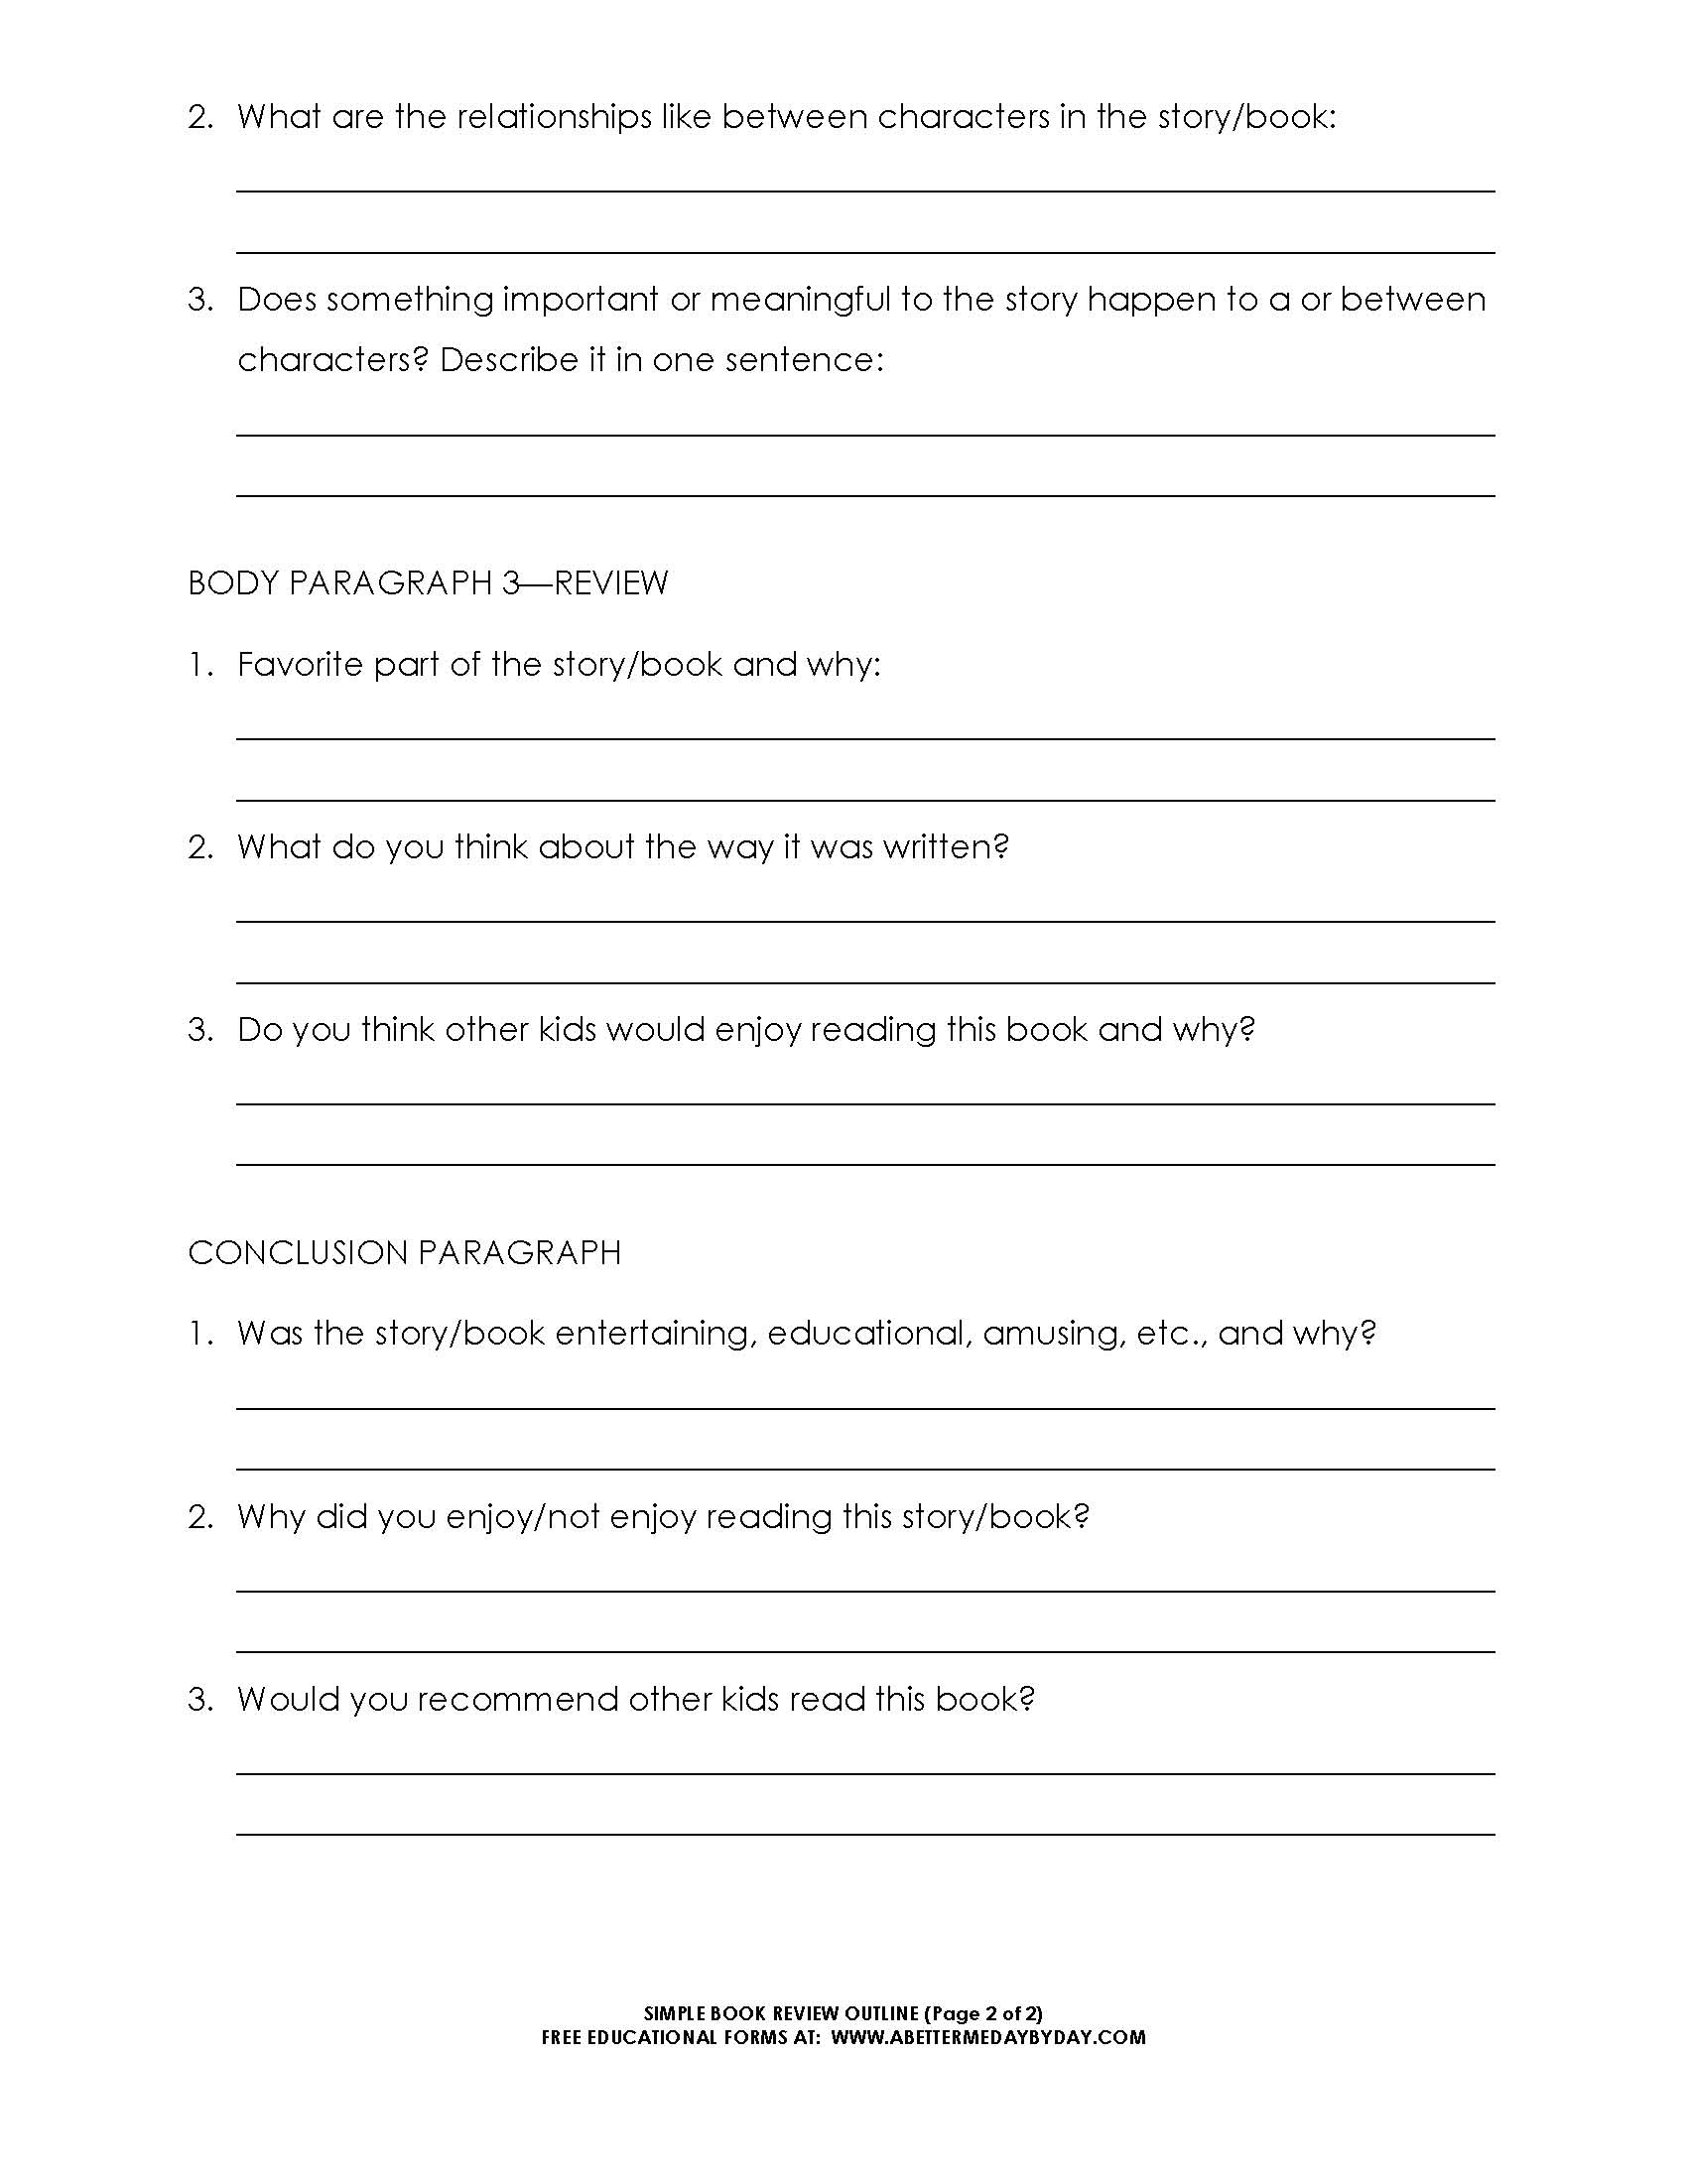 Basic 5 paragraph essay template outline